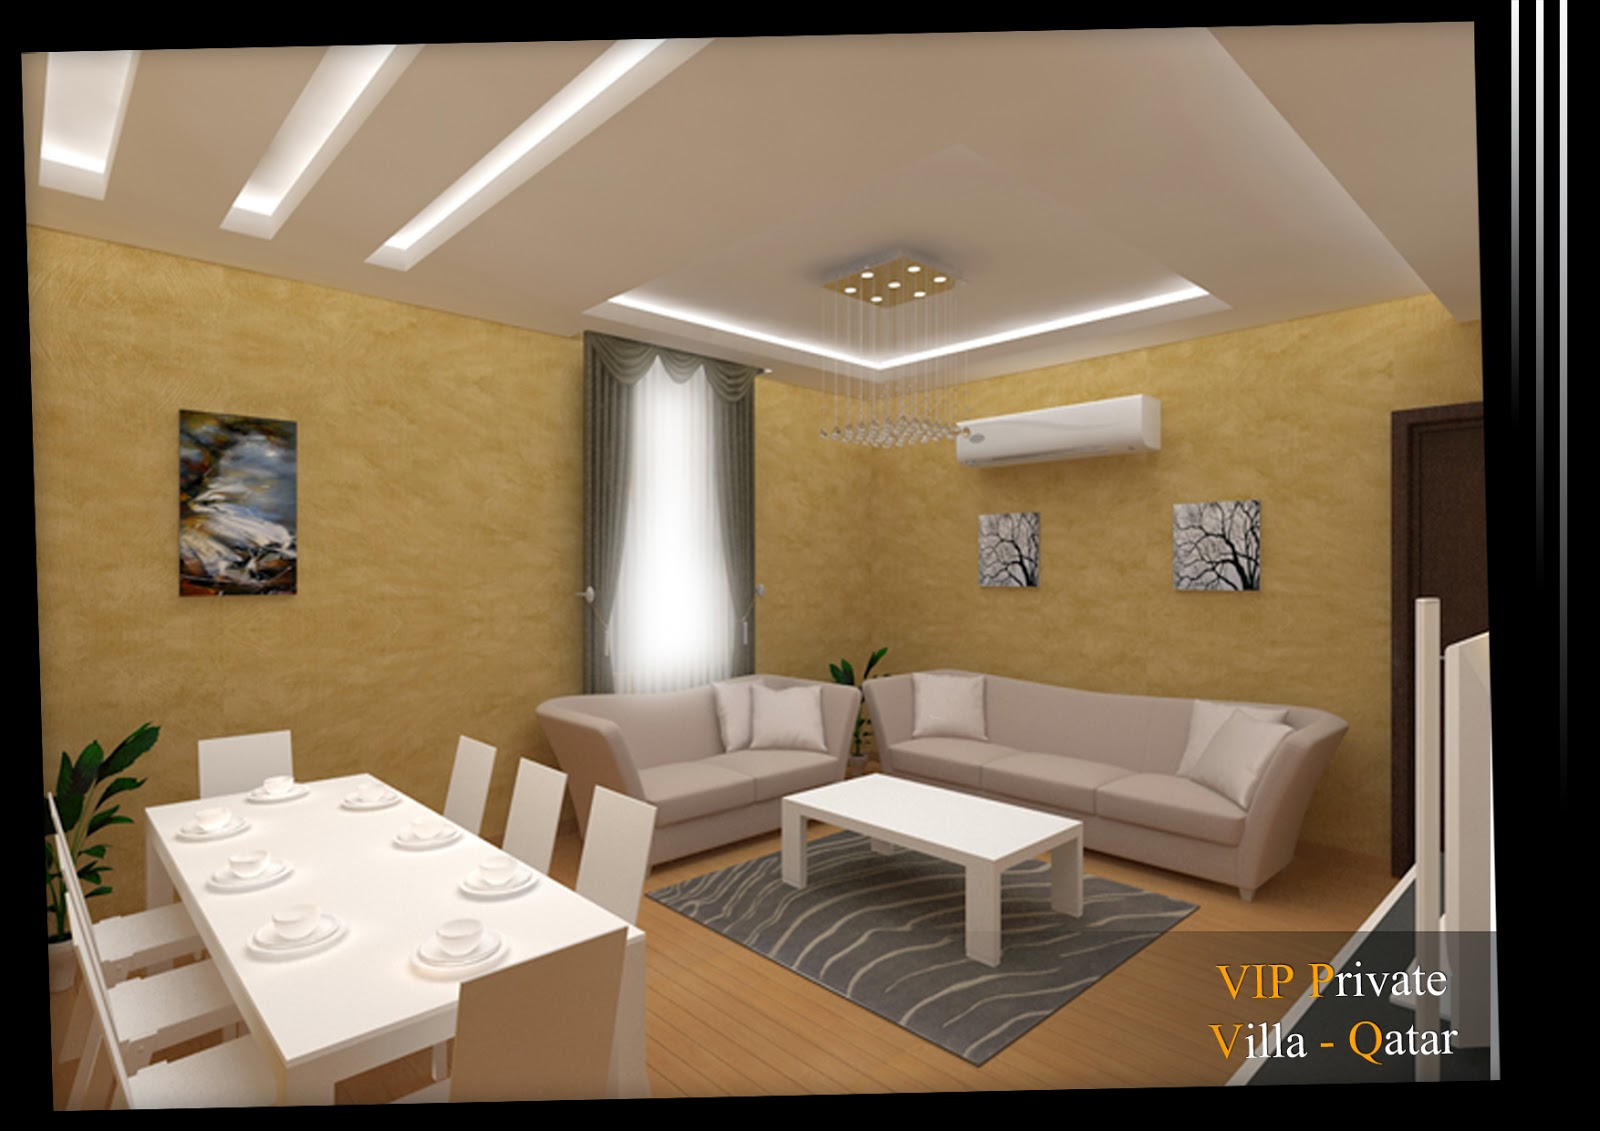 Arch michael boules interior design for living room qatar for Interior design qatar